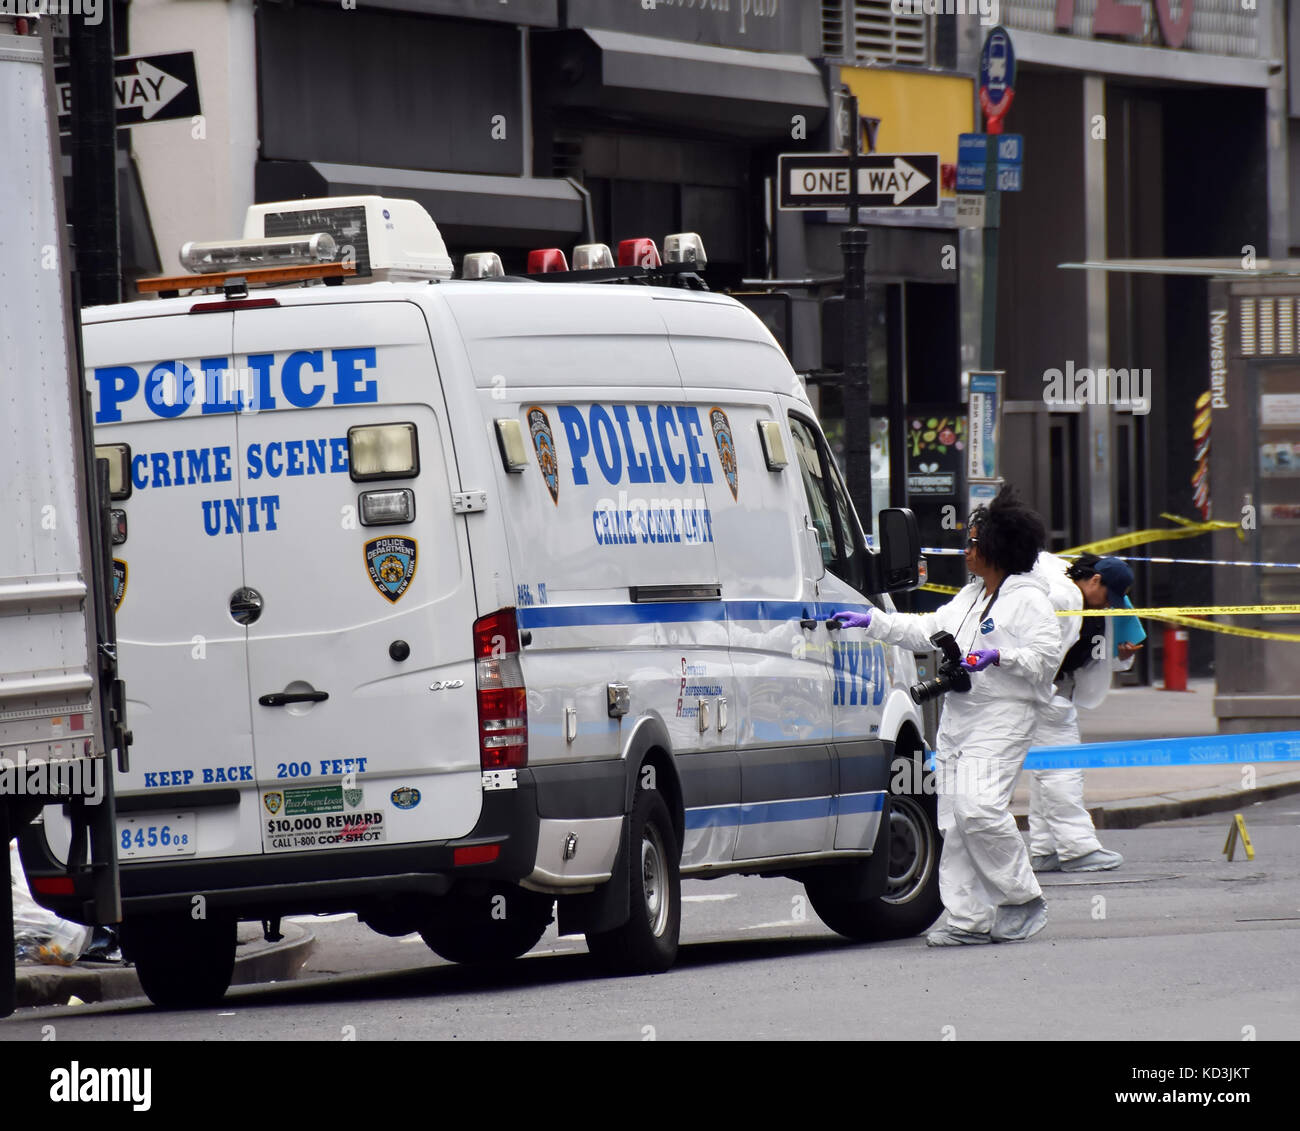 NEW YORK - MAY 13: NYPD Crime scene investigators probe the scene of a shooting in Midtown New York on May 13, 2015. - Stock Image